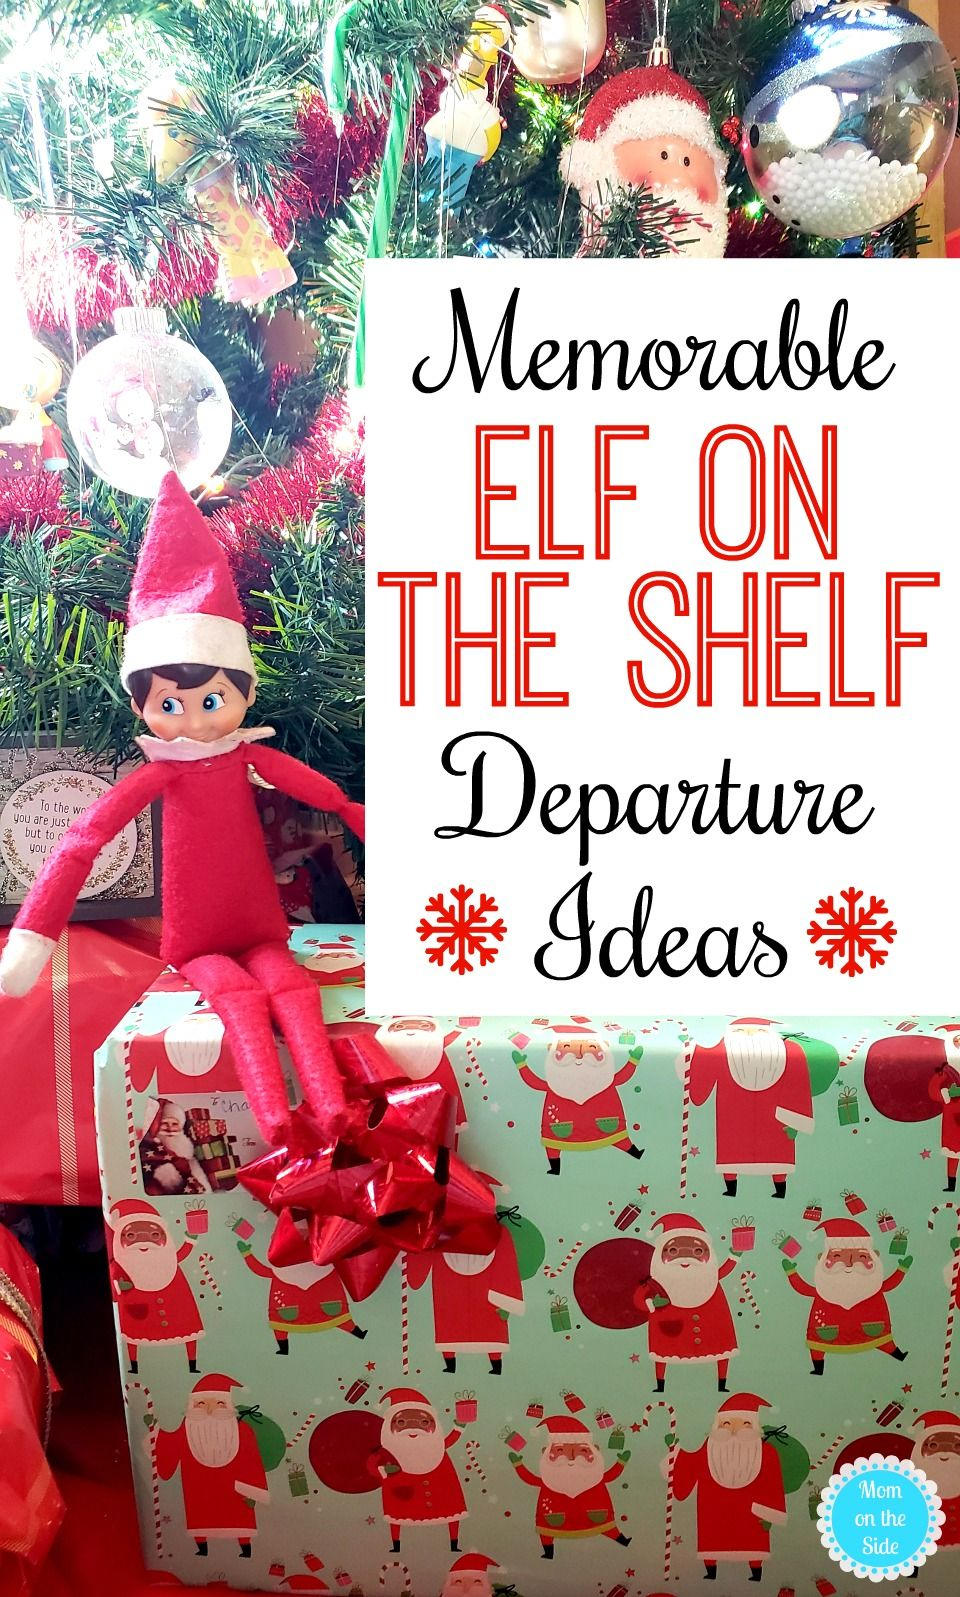 Elf on the Shelf Departure Ideas and Departure Letters